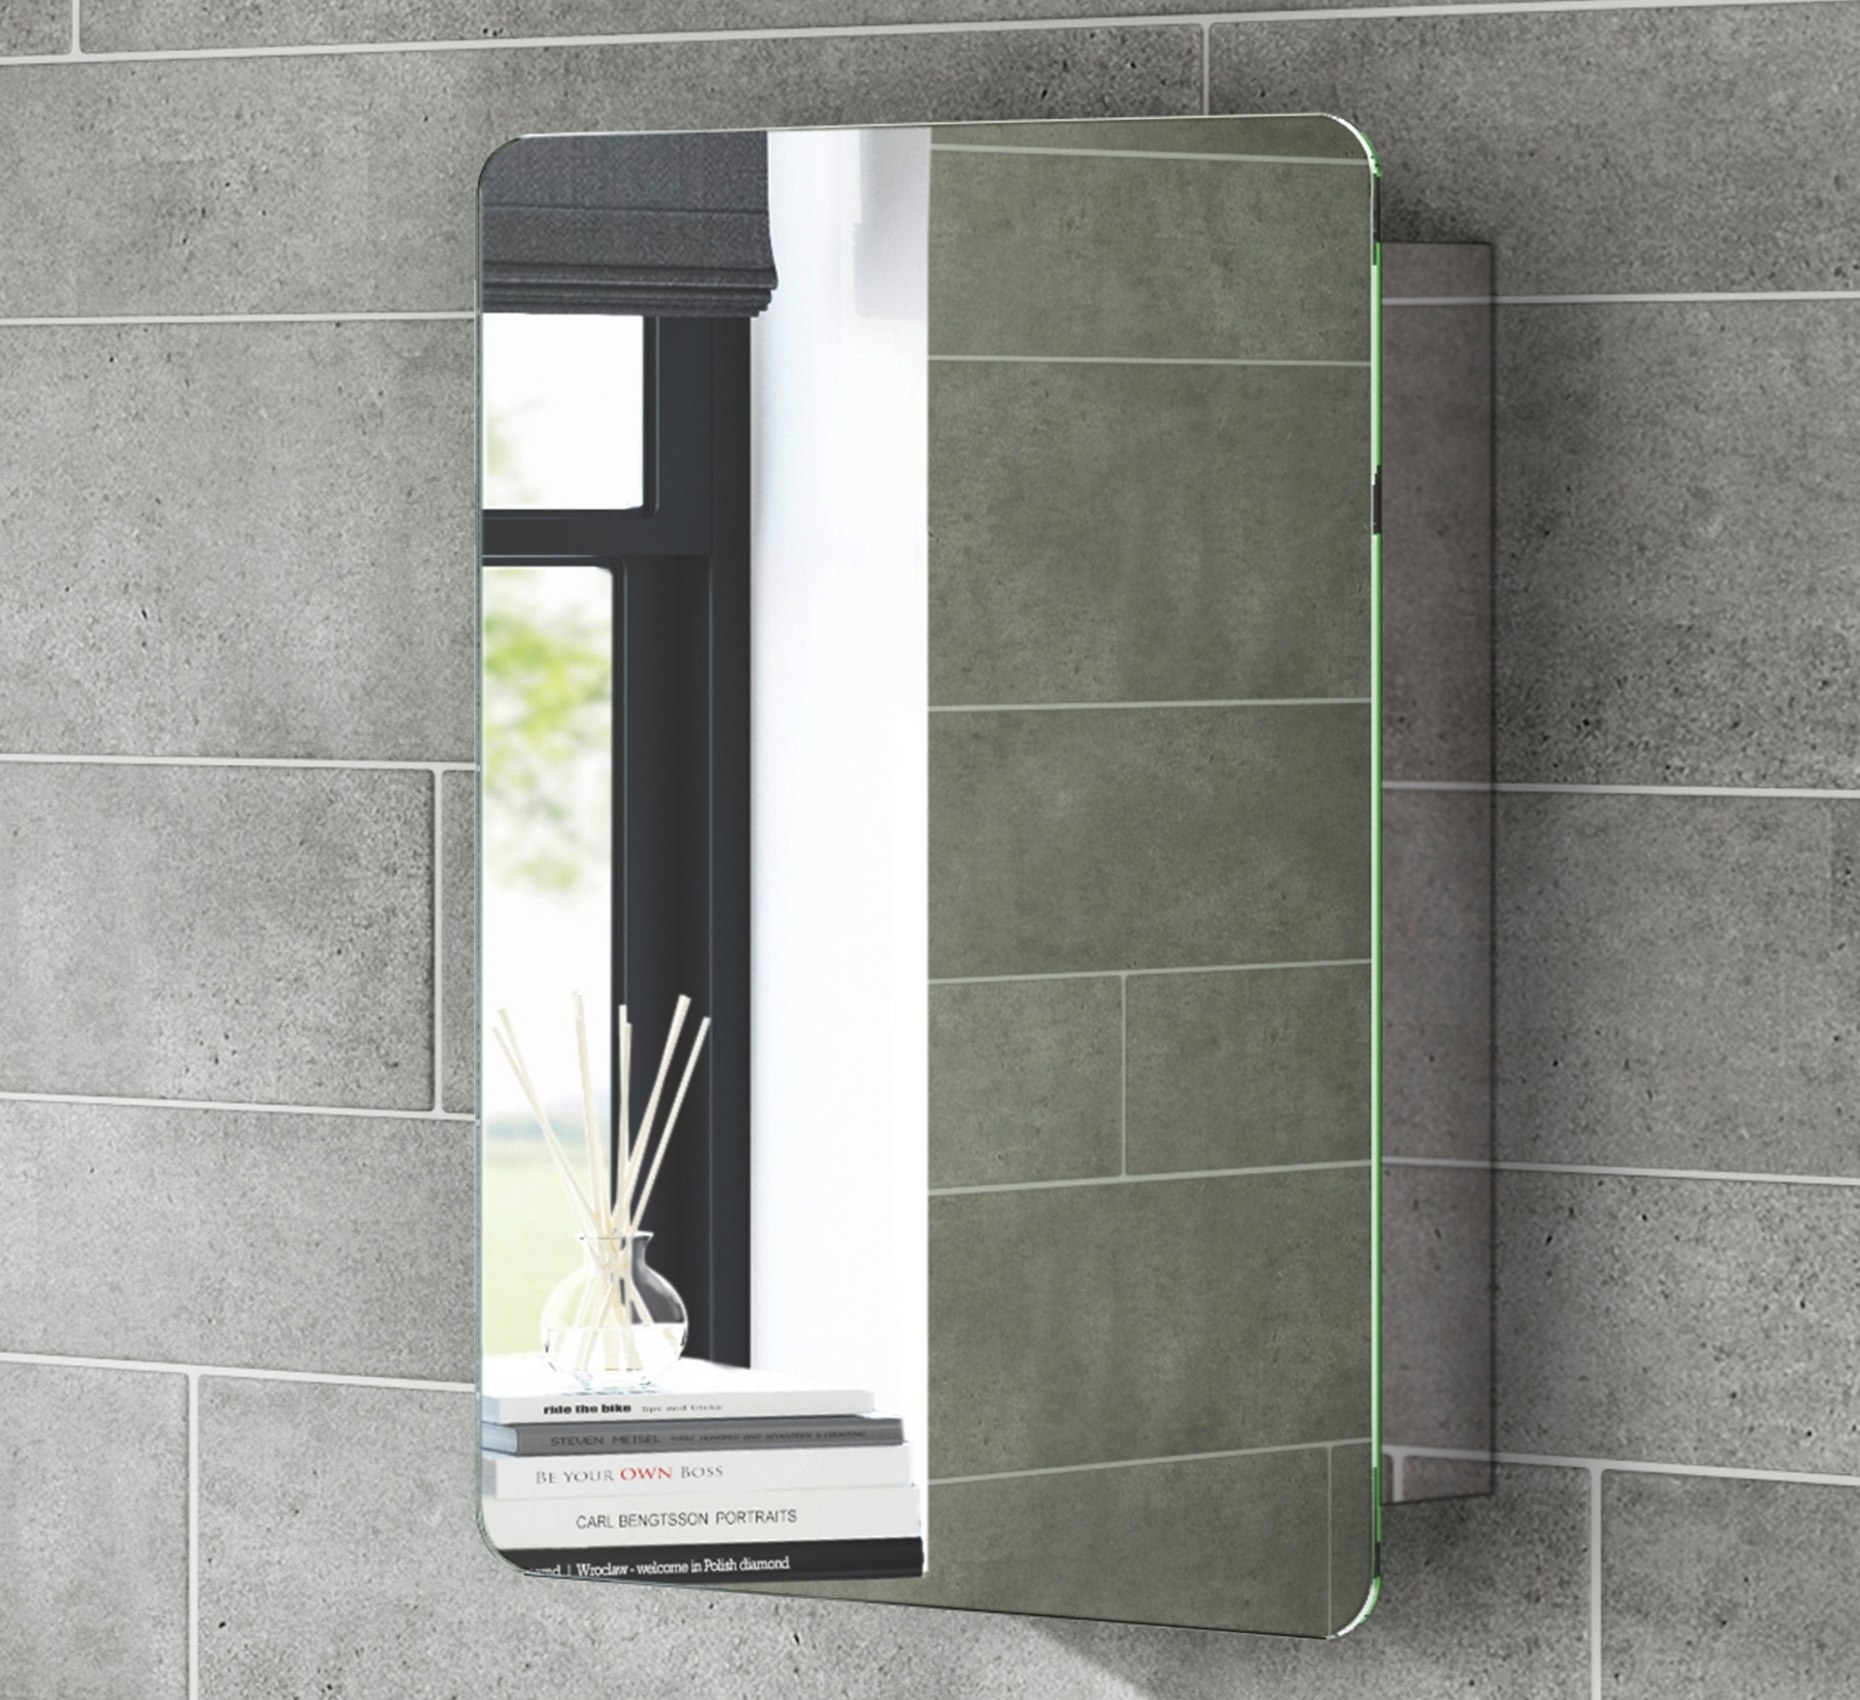 Bathroom Cabinets With Sliding Doors